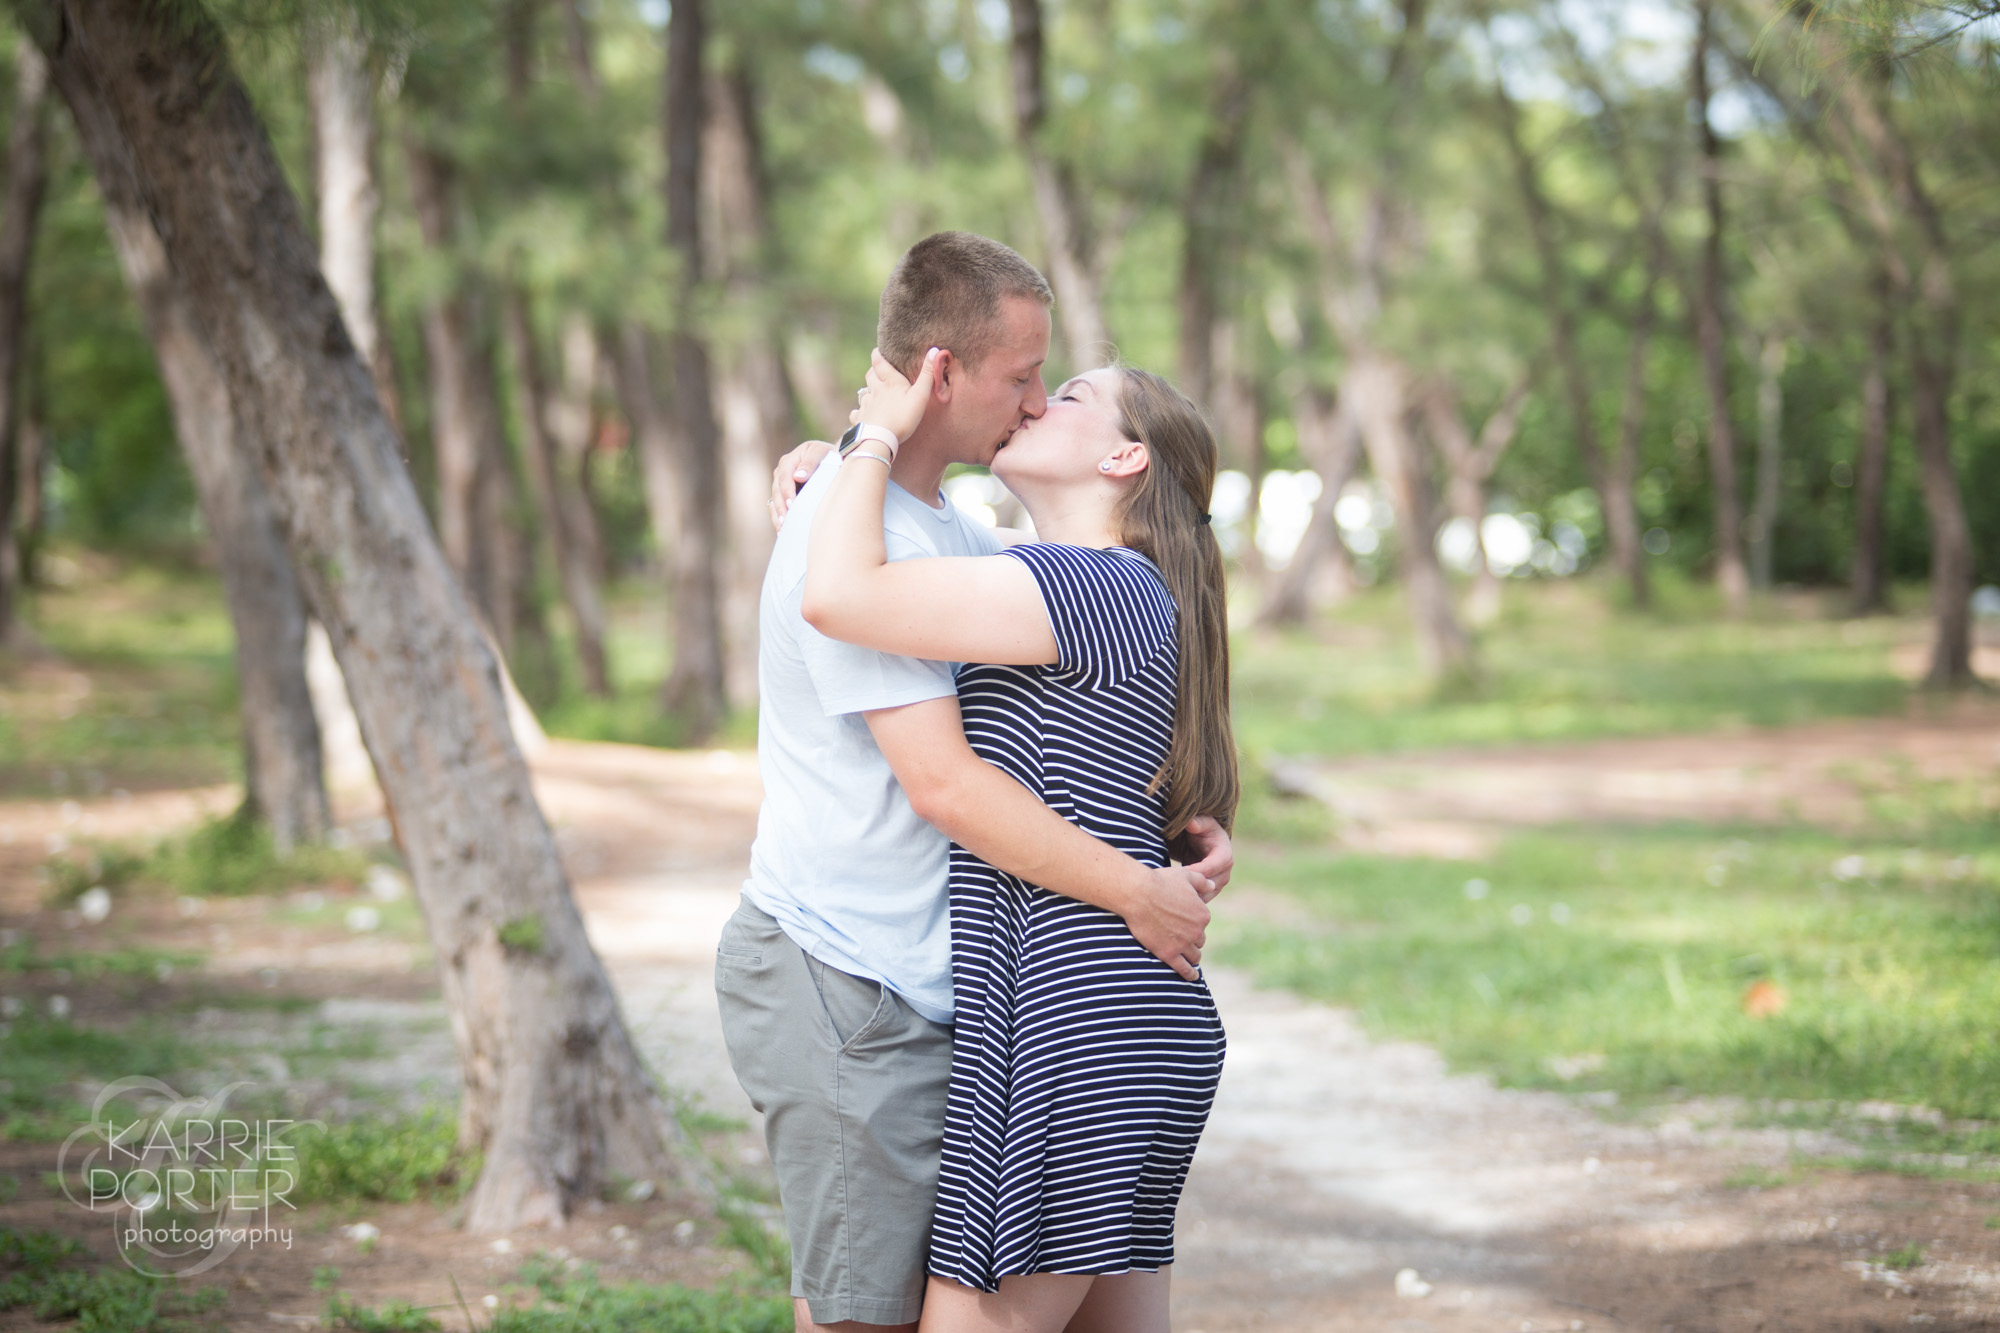 During a proposal photo shoot in Key West, Nick and Alyssa sneak a kiss under the Australian Pines of Fort Zachary Taylor State Park.